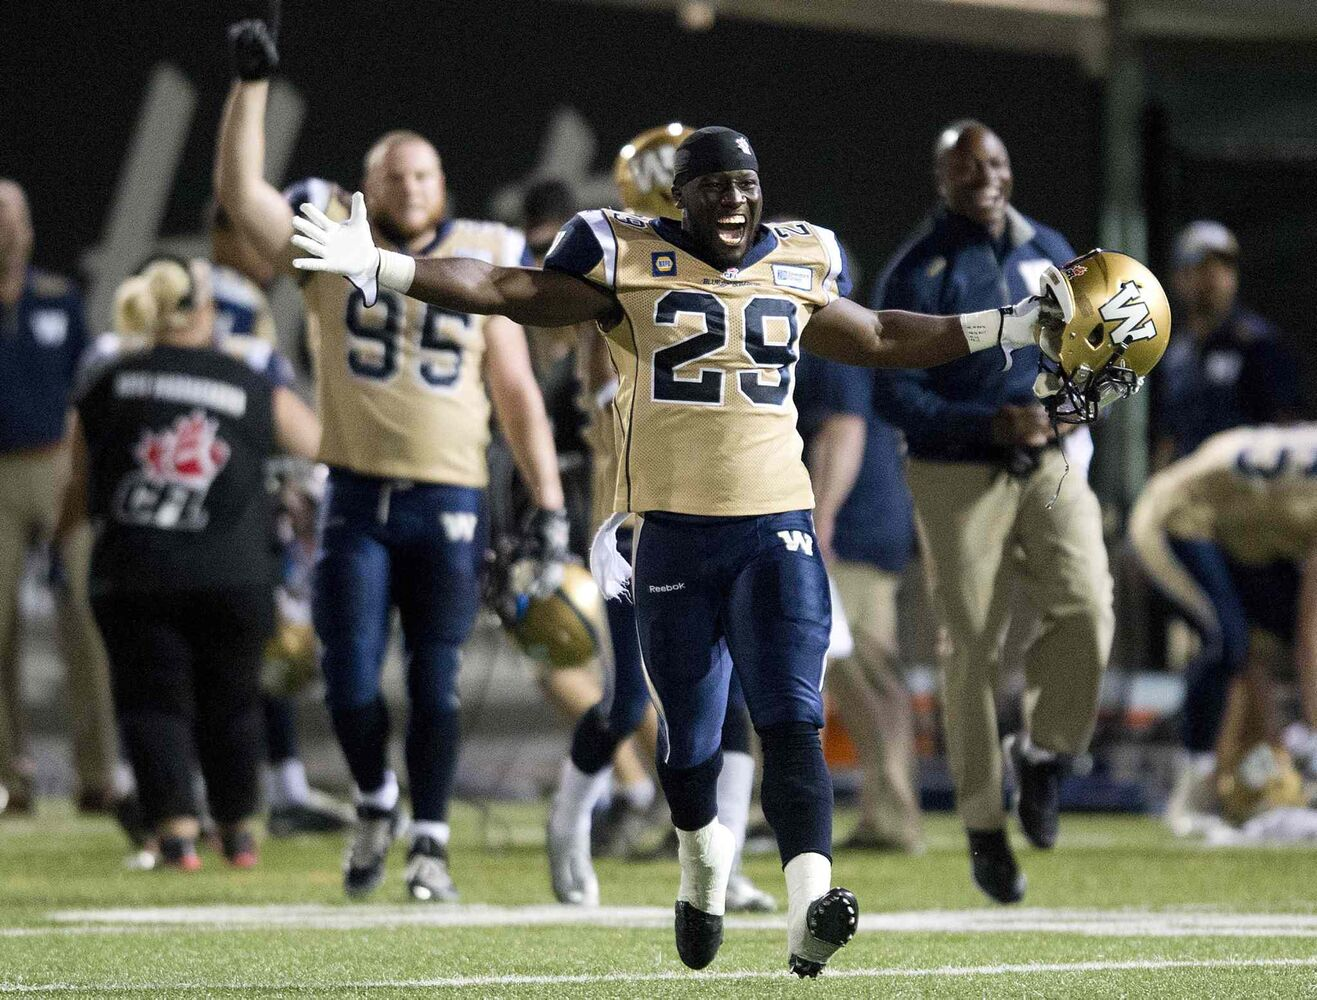 Winnipeg Blue Bombers' running back Carl Volny (29) celebrates after defeating the Hamilton Tiger-Cats 27-26 Thursday night.